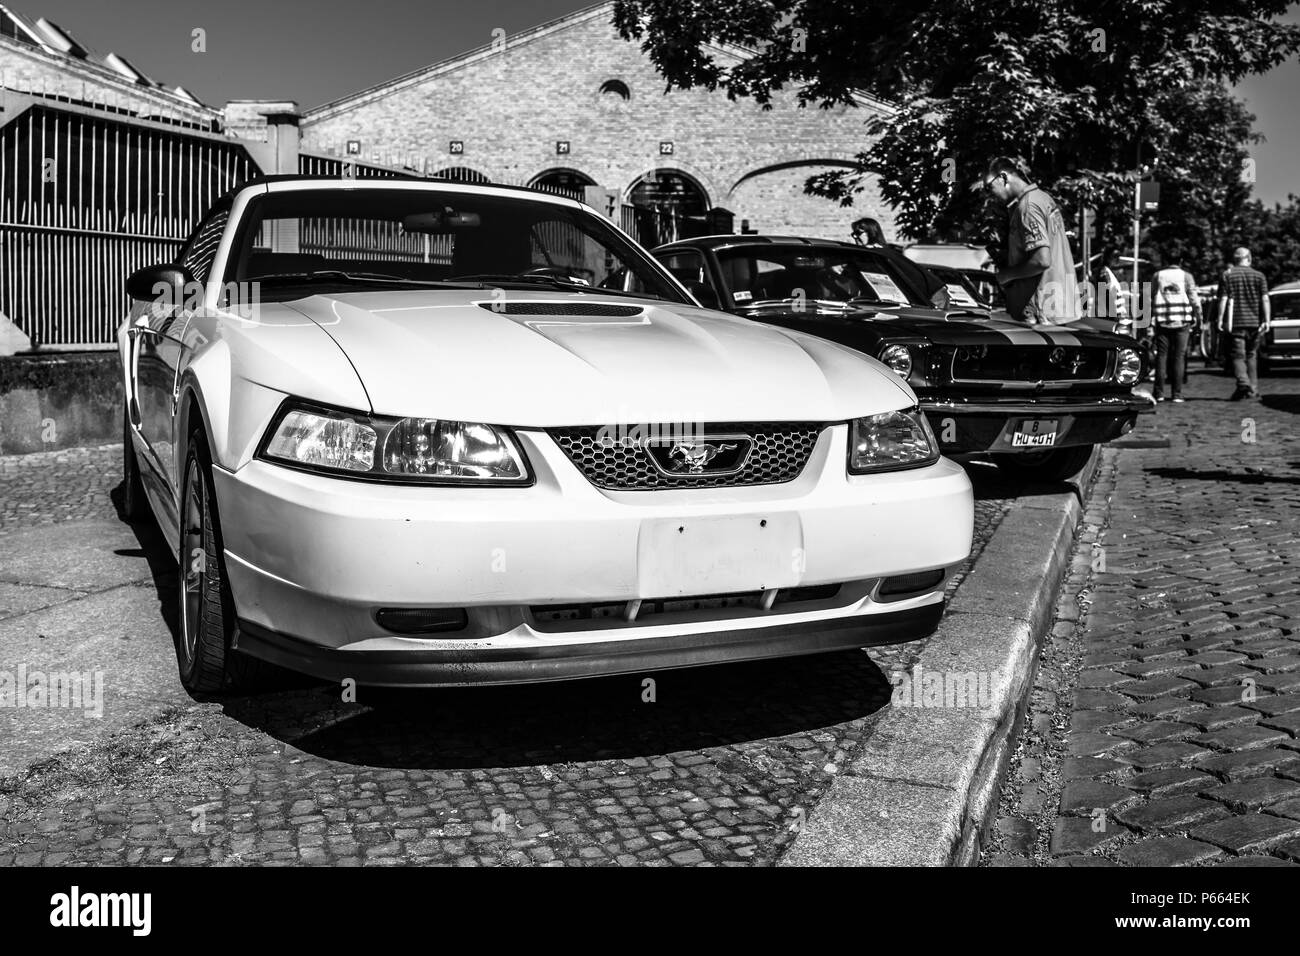 Muscle Car Black And White Stock Photos Images Alamy